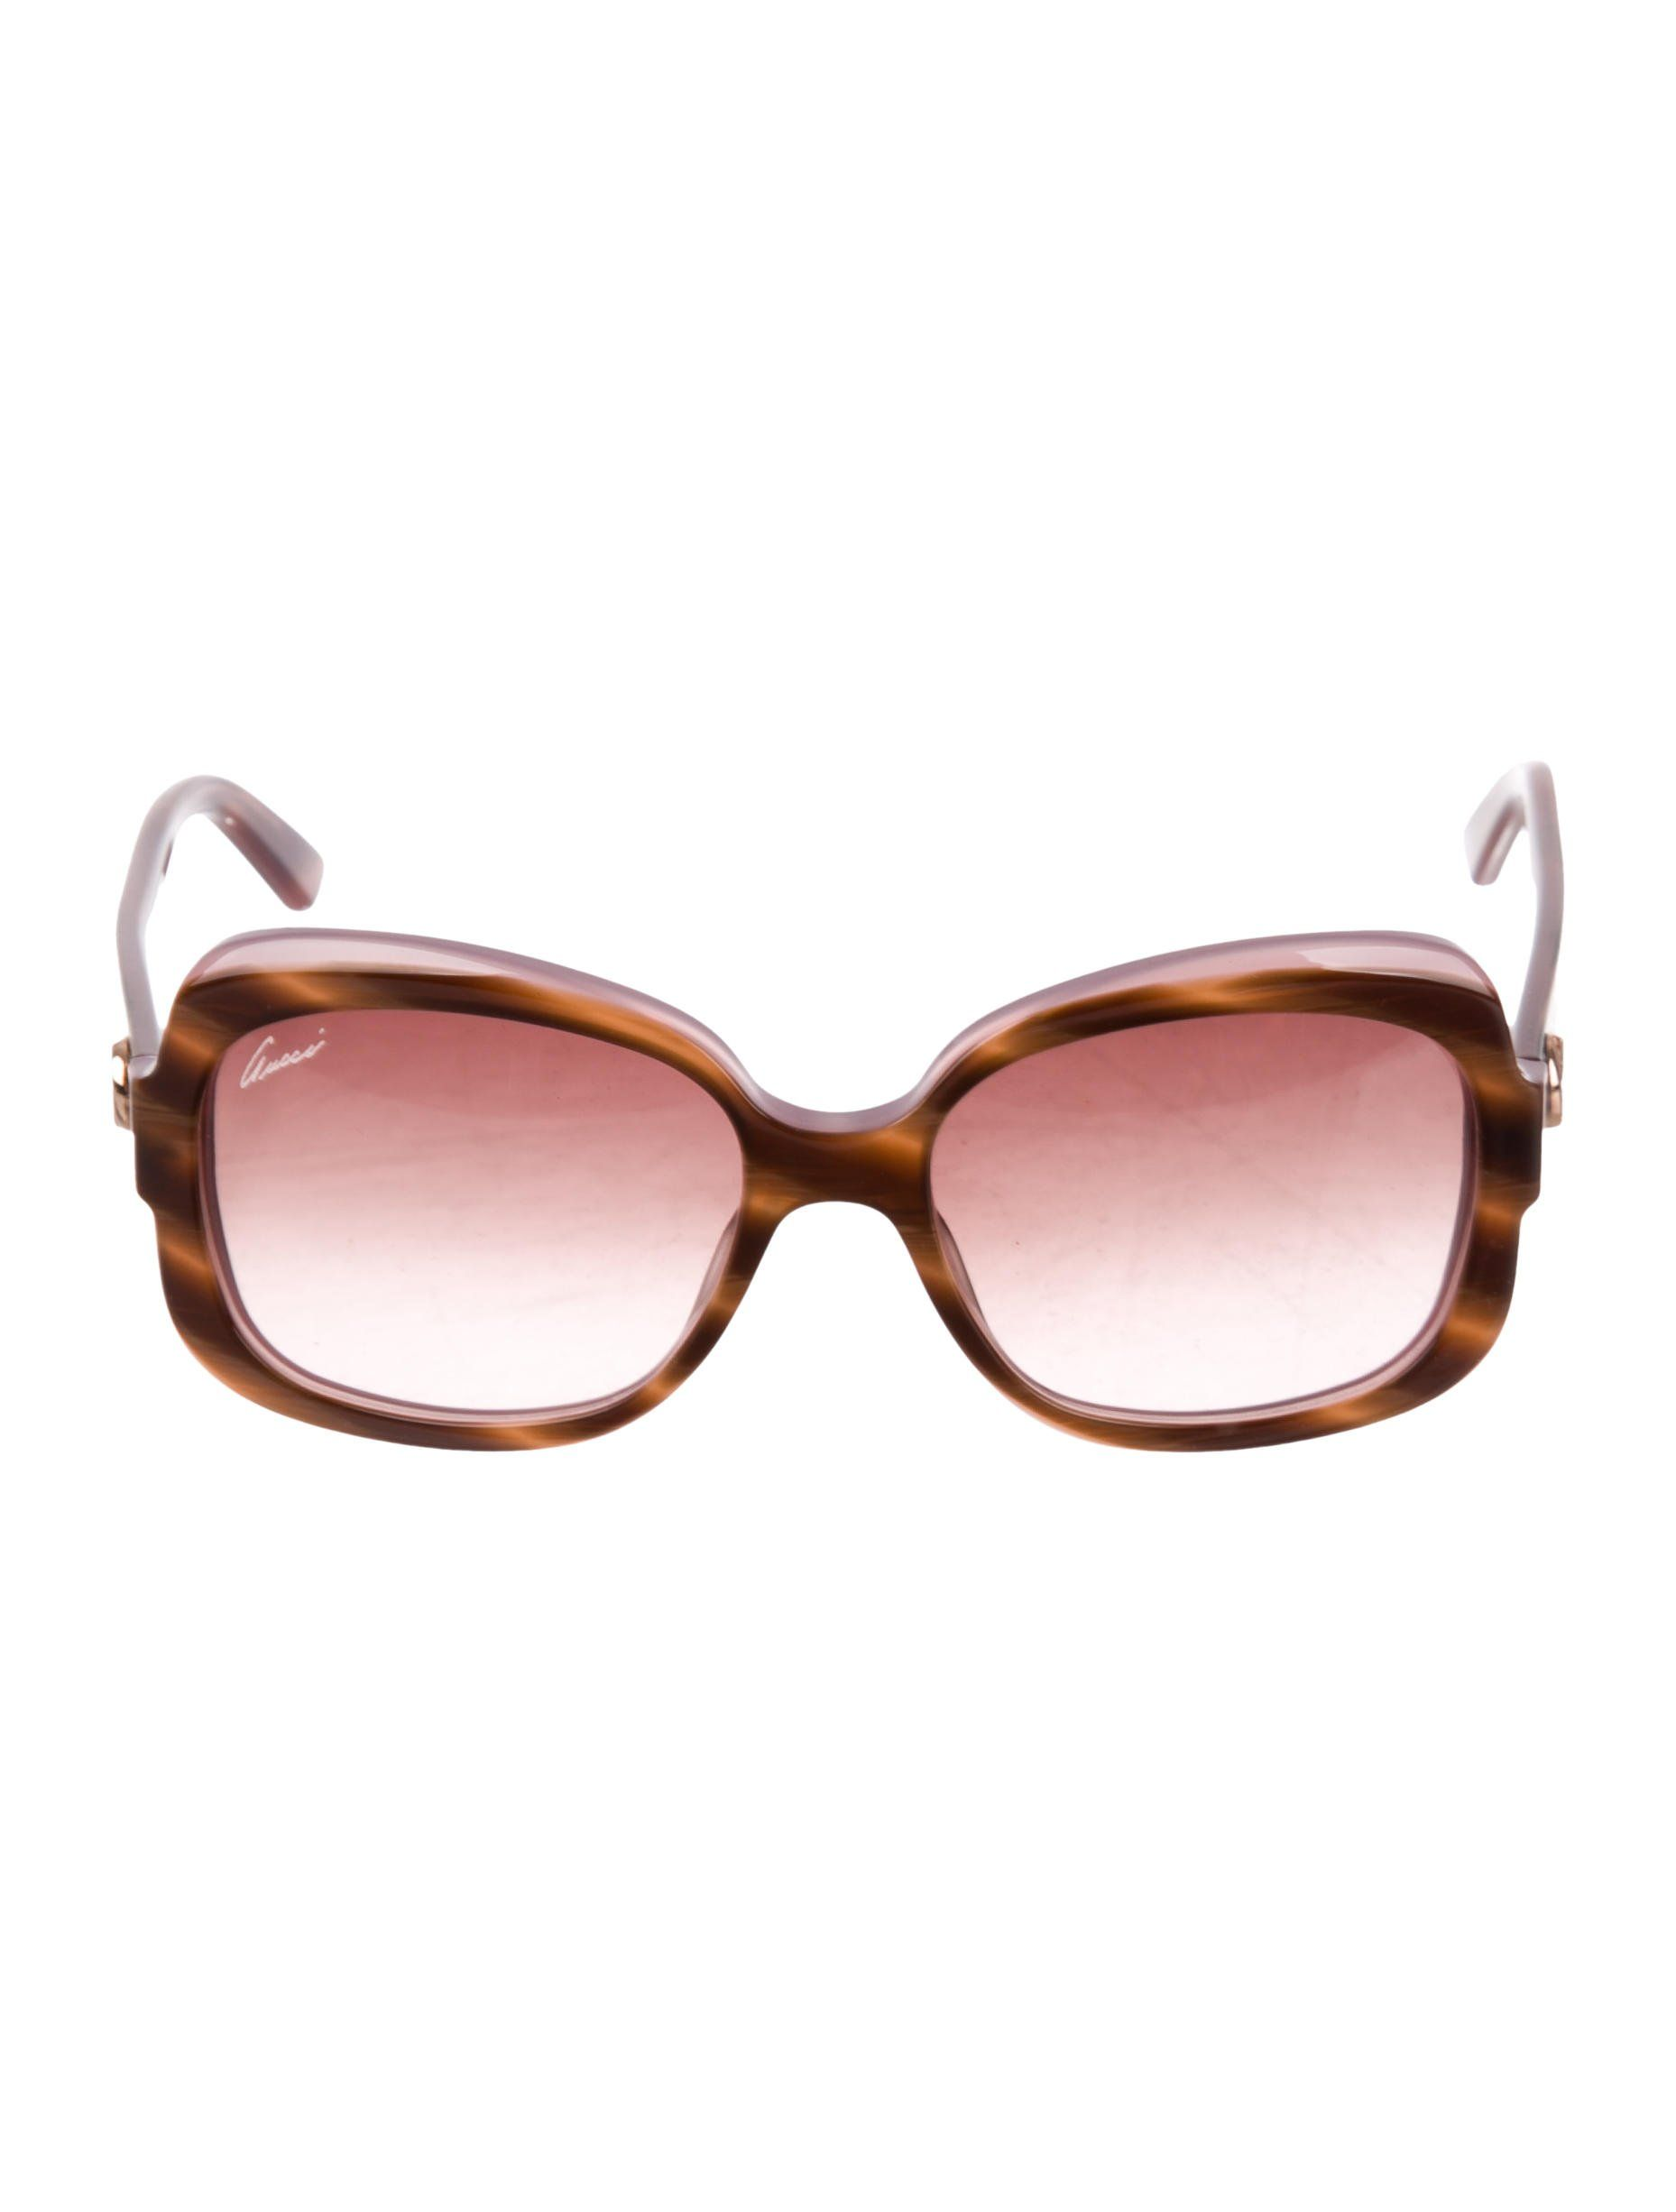 ffb0ae04c92ab Two-tone brown and mauve resin Gucci GG sunglasses with gradient lenses and  gold-tone logo embellishments at temples.